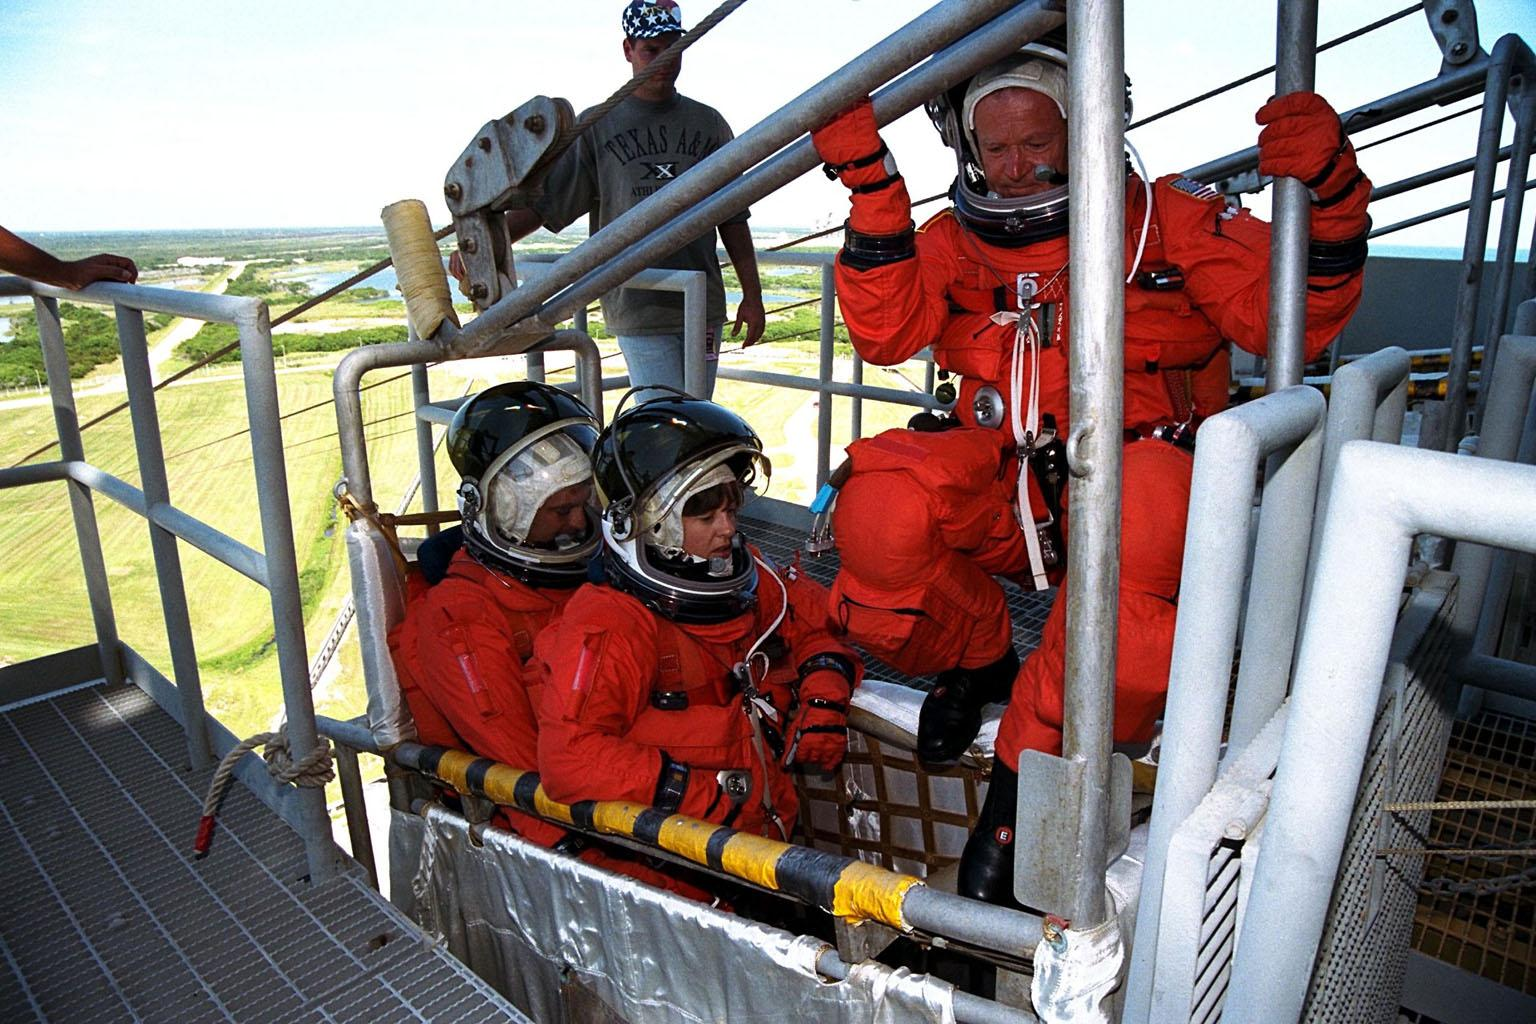 KENNEDY SPACE CENTER, Fla. -- STS-86 Mission Specialist Jean-Loup J.M. Chretien of the French Space Agency, CNES, prepares to join his fellow crew members, Mission Specialists Wendy B. Lawrence and David A. Wolf, at far left, in a slidewire basket during emergency egress training at Launch Pad 39A. The crew is at KSC to participate in the Terminal Countdown Demonstration Test (TCDT), a dress rehearsal for launch. STS-86 will be the seventh docking of the Space Shuttle with the Russian Space Station Mir. Liftoff of the Space Shuttle Atlantis on Mission STS-86 is targeted for Sept. 25